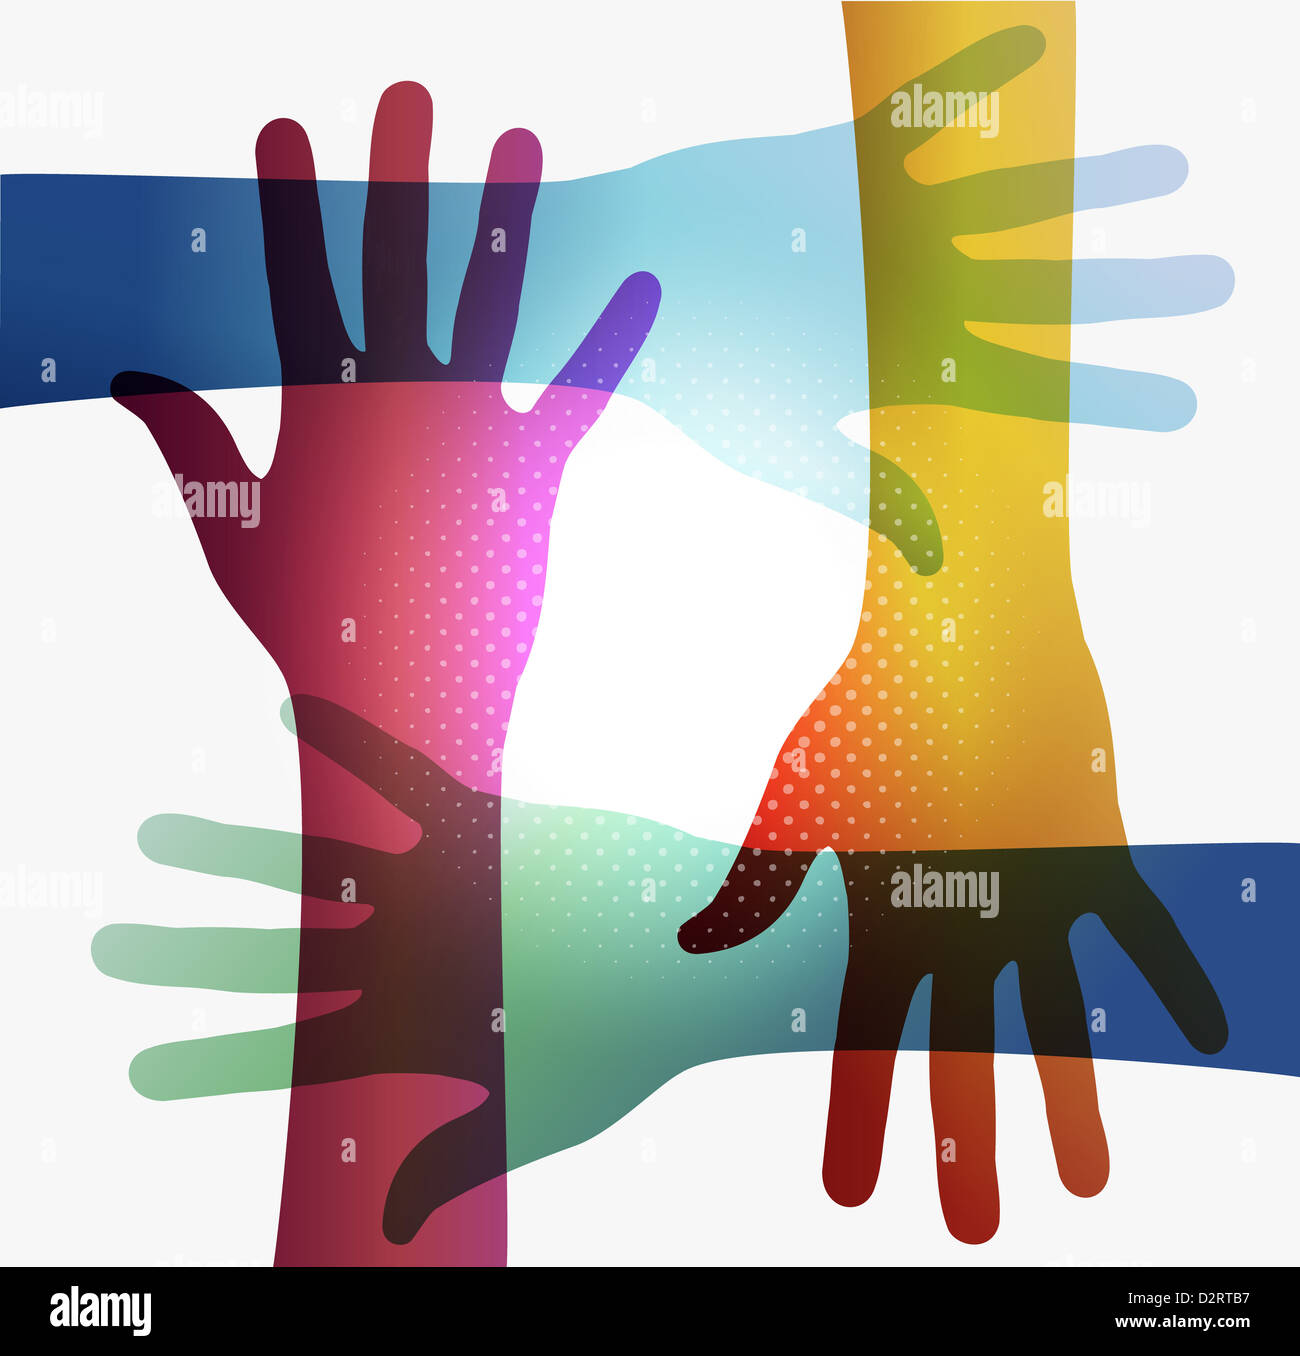 Diversity transparent hands on white background. EPS 10 vector illustration, cleanly built grouped and ordered in - Stock Image